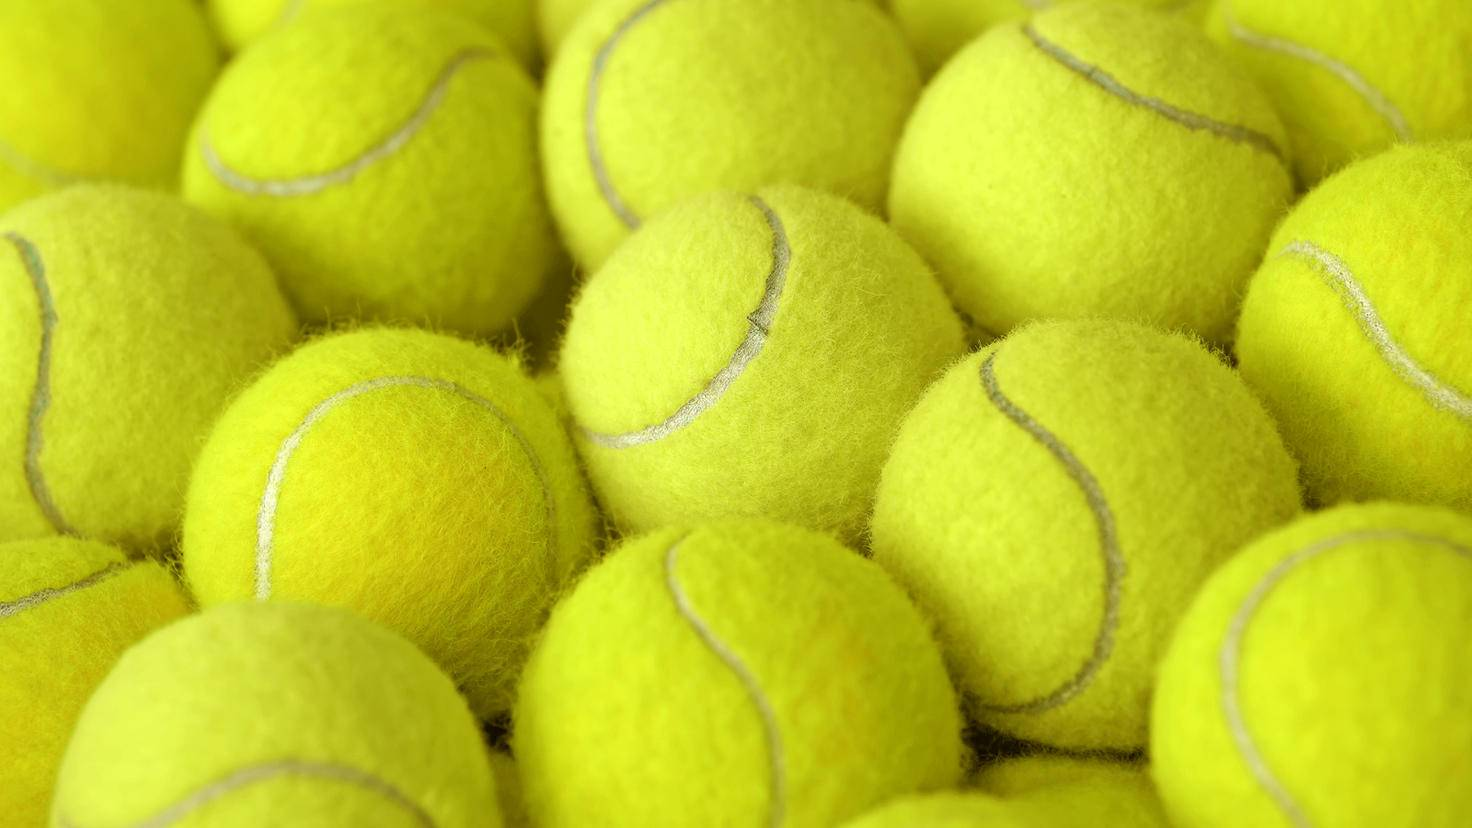 Tennisball-leisuretime70-AdobeStock_94972511